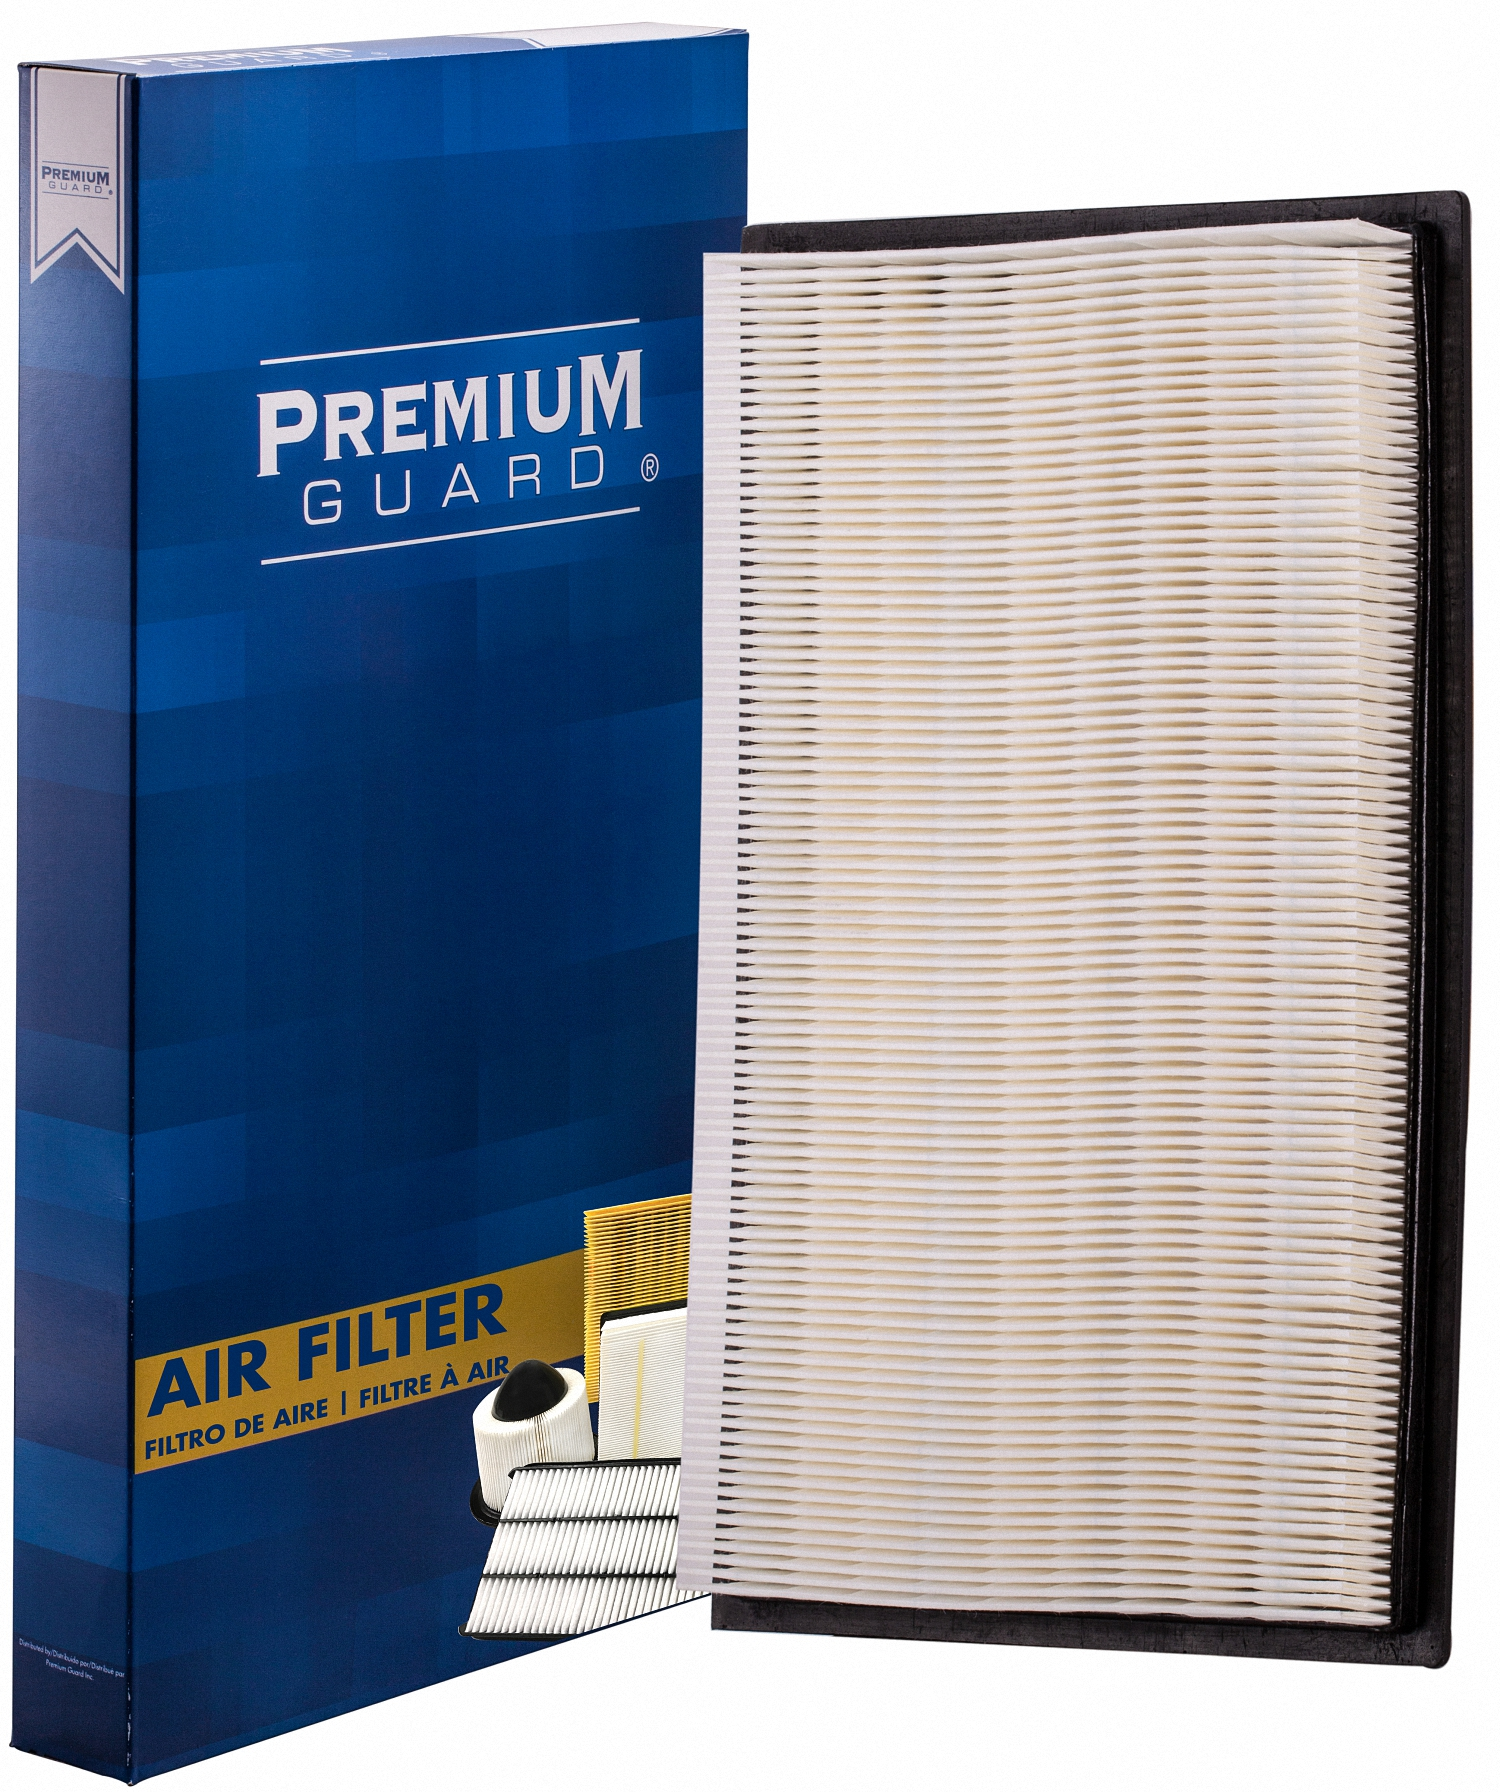 ENGINE AIR FILTER FOR INFINITI FITS G35 3.5L ENGINE 2003-2007